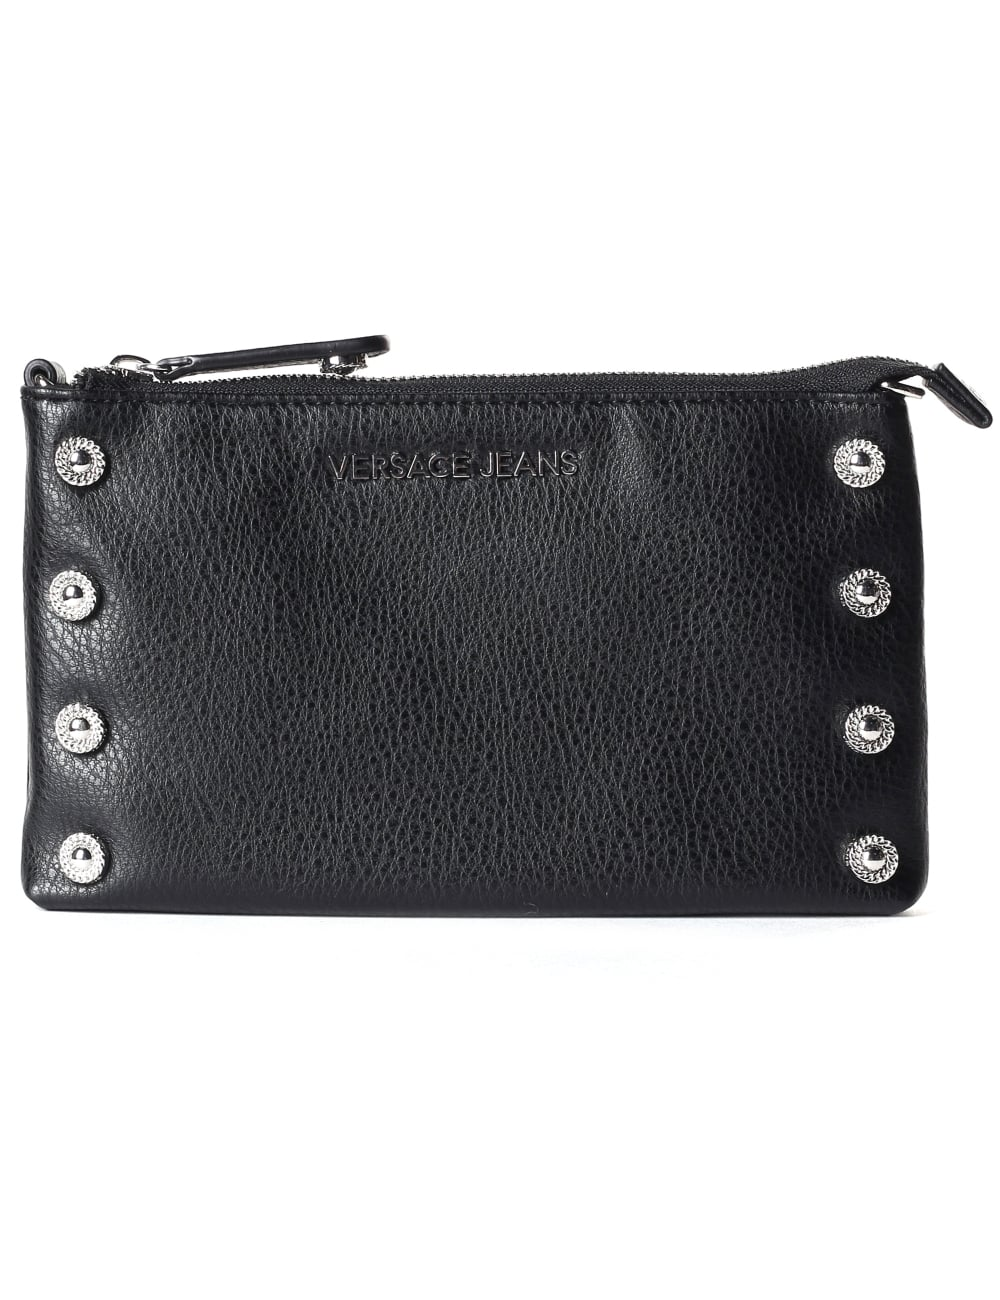 89ff1d567d Versace Jeans Women s Studded Flat Clutch Bag